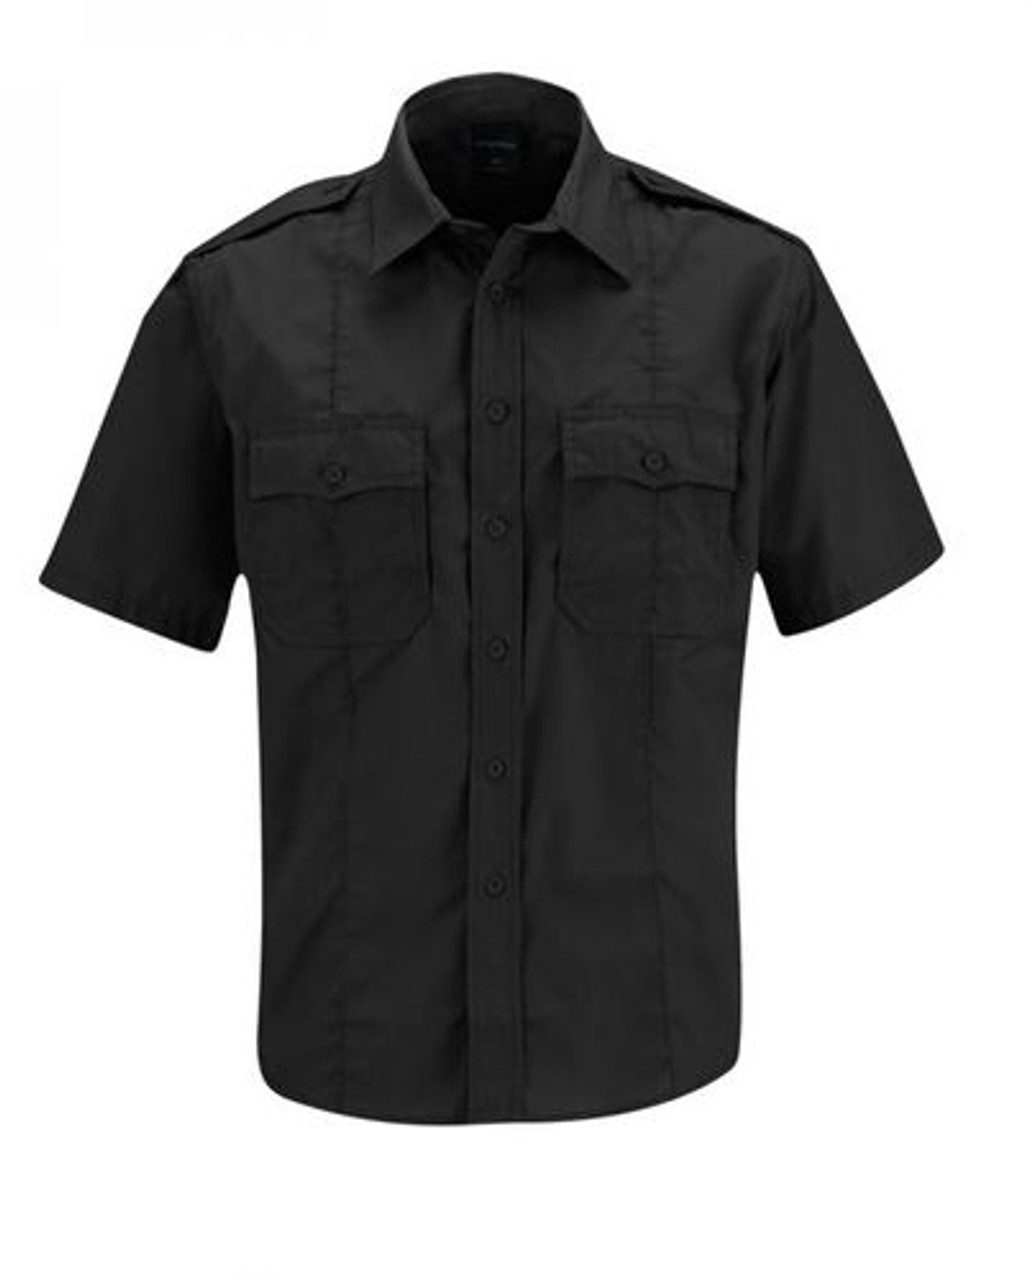 Propper® F5336-50 Men's Class B Tactical Uniform Button-Down Shirt, Short Sleeve, 2 Chest Pockets, Badge Tab, Polyester/Cotton lightweight ripstop w/Teflon™fabric protector, available in Black, Tan, and Navy